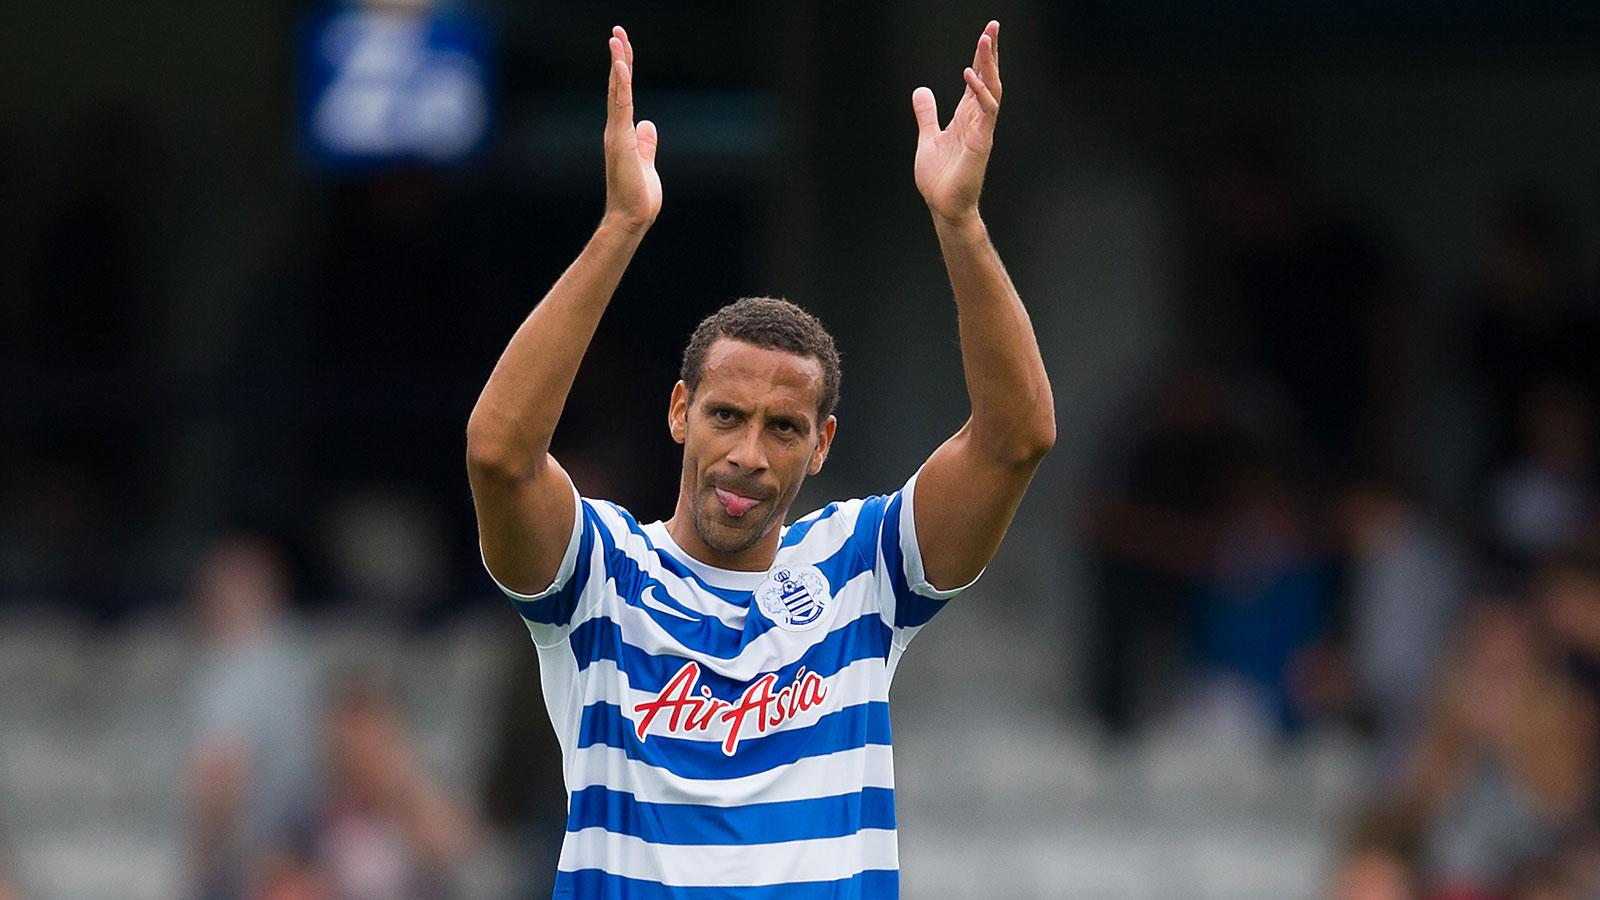 RIO FERDINAND MISCONDUCT CHARGE